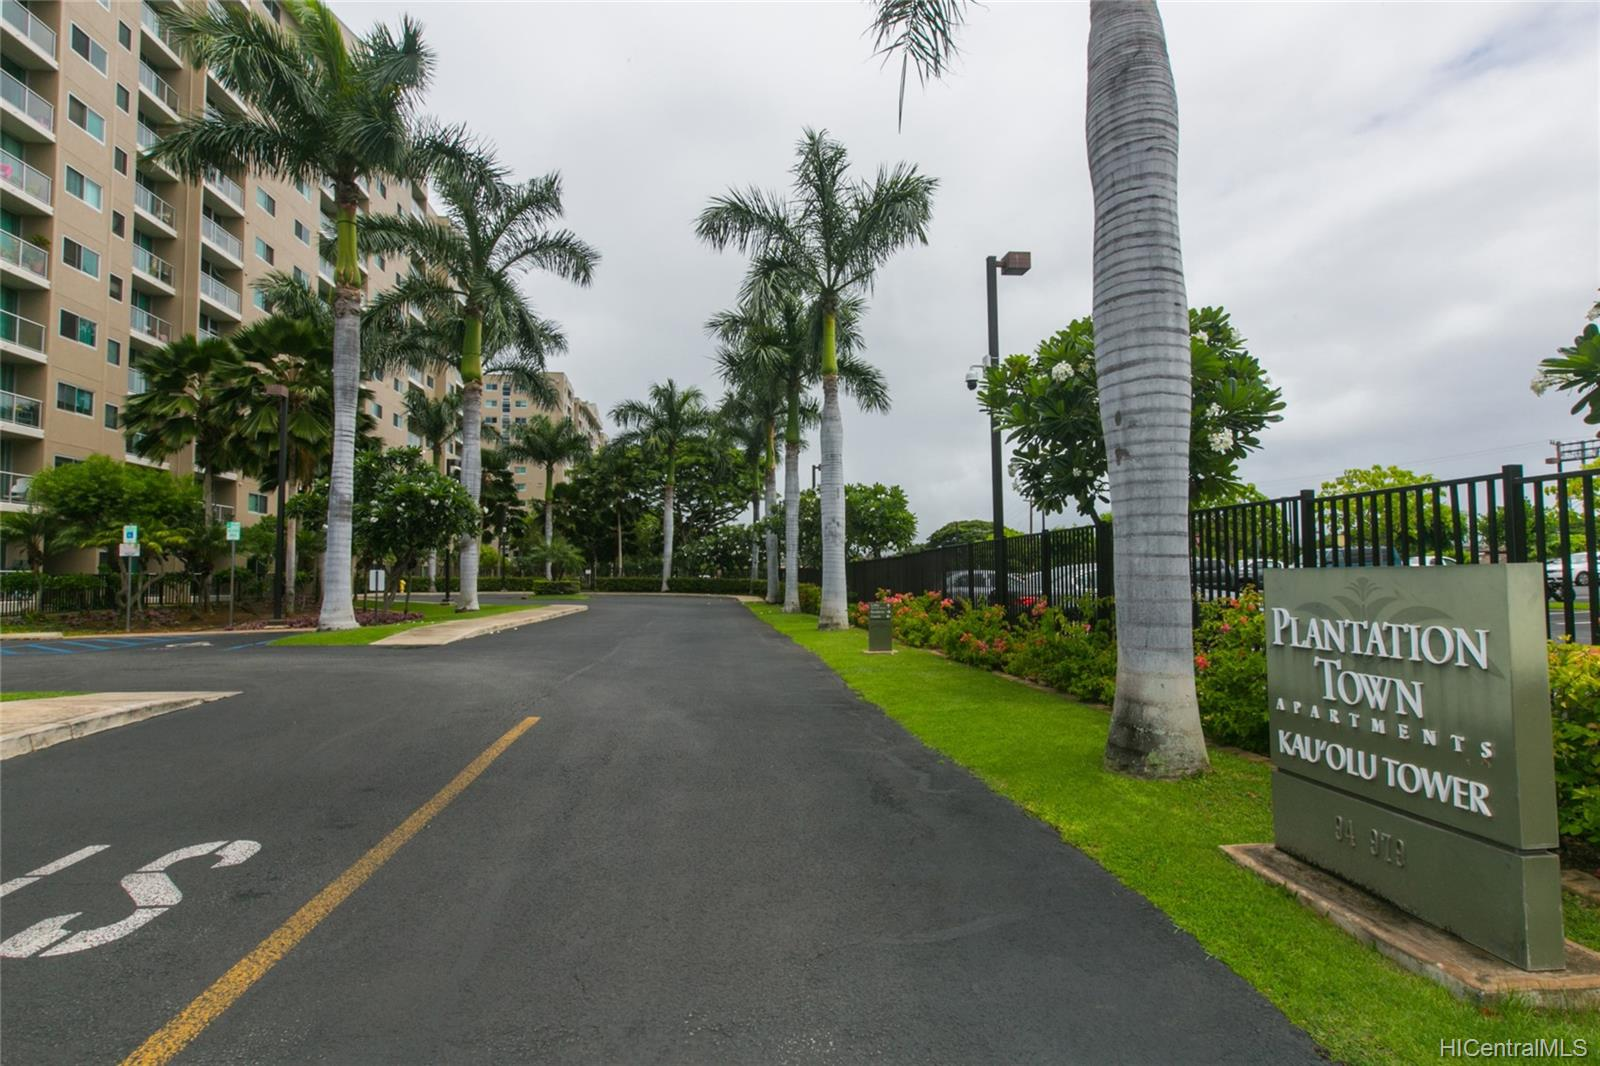 Plantation Town Apartments 94-979 Kauolu Place  Unit 204